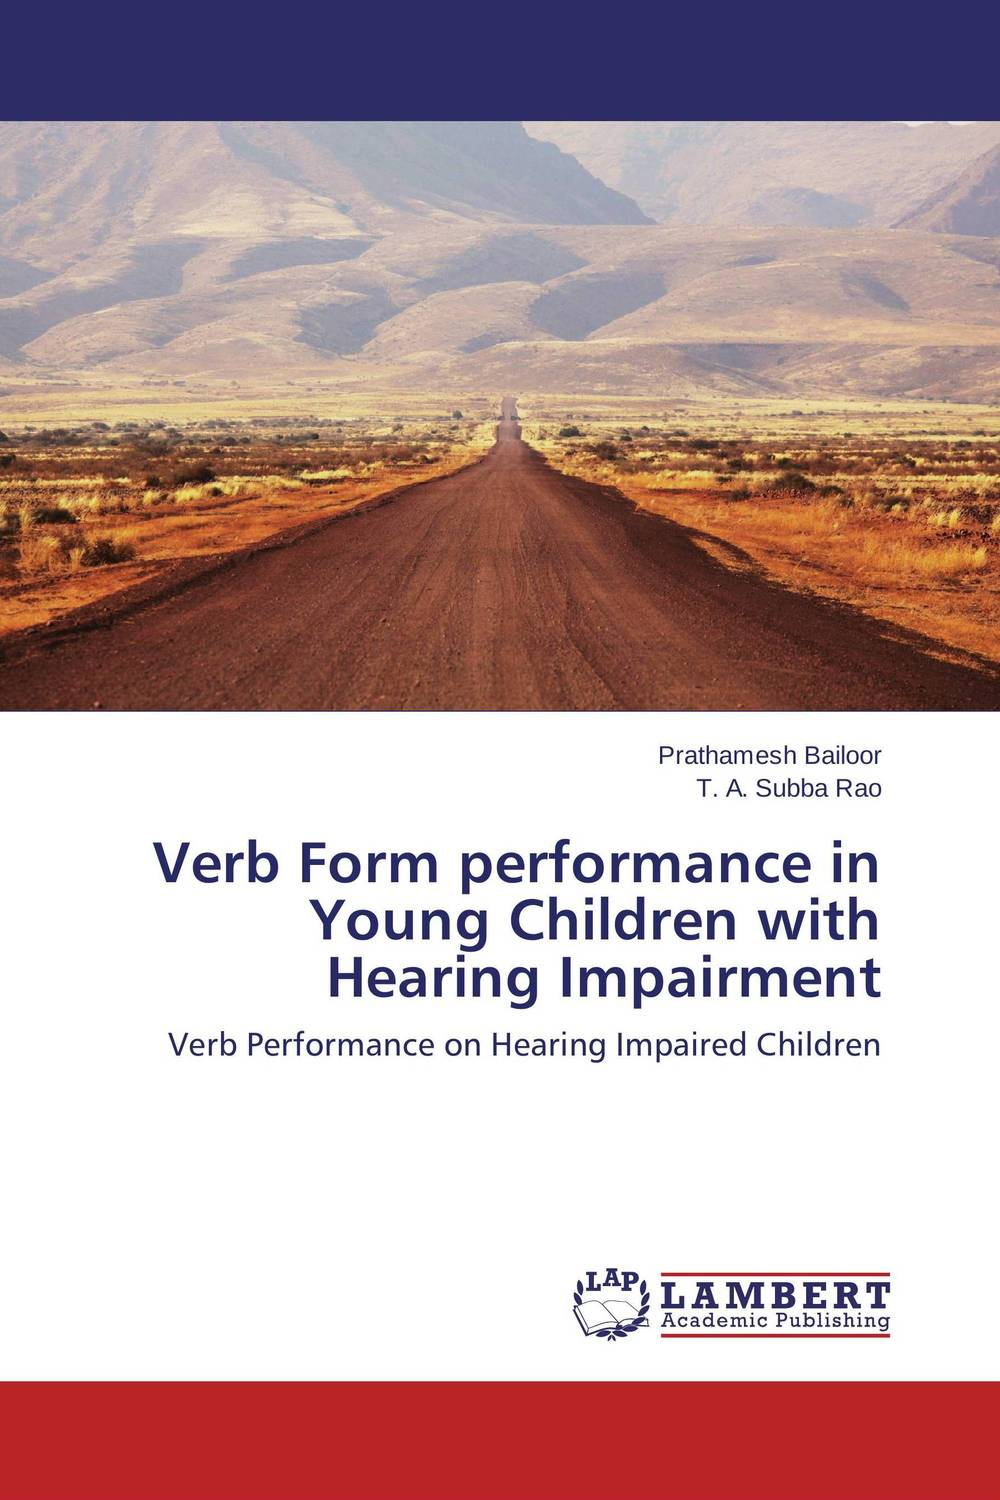 Verb Form performance in Young Children with Hearing Impairment alexander mishkin how to stay young it